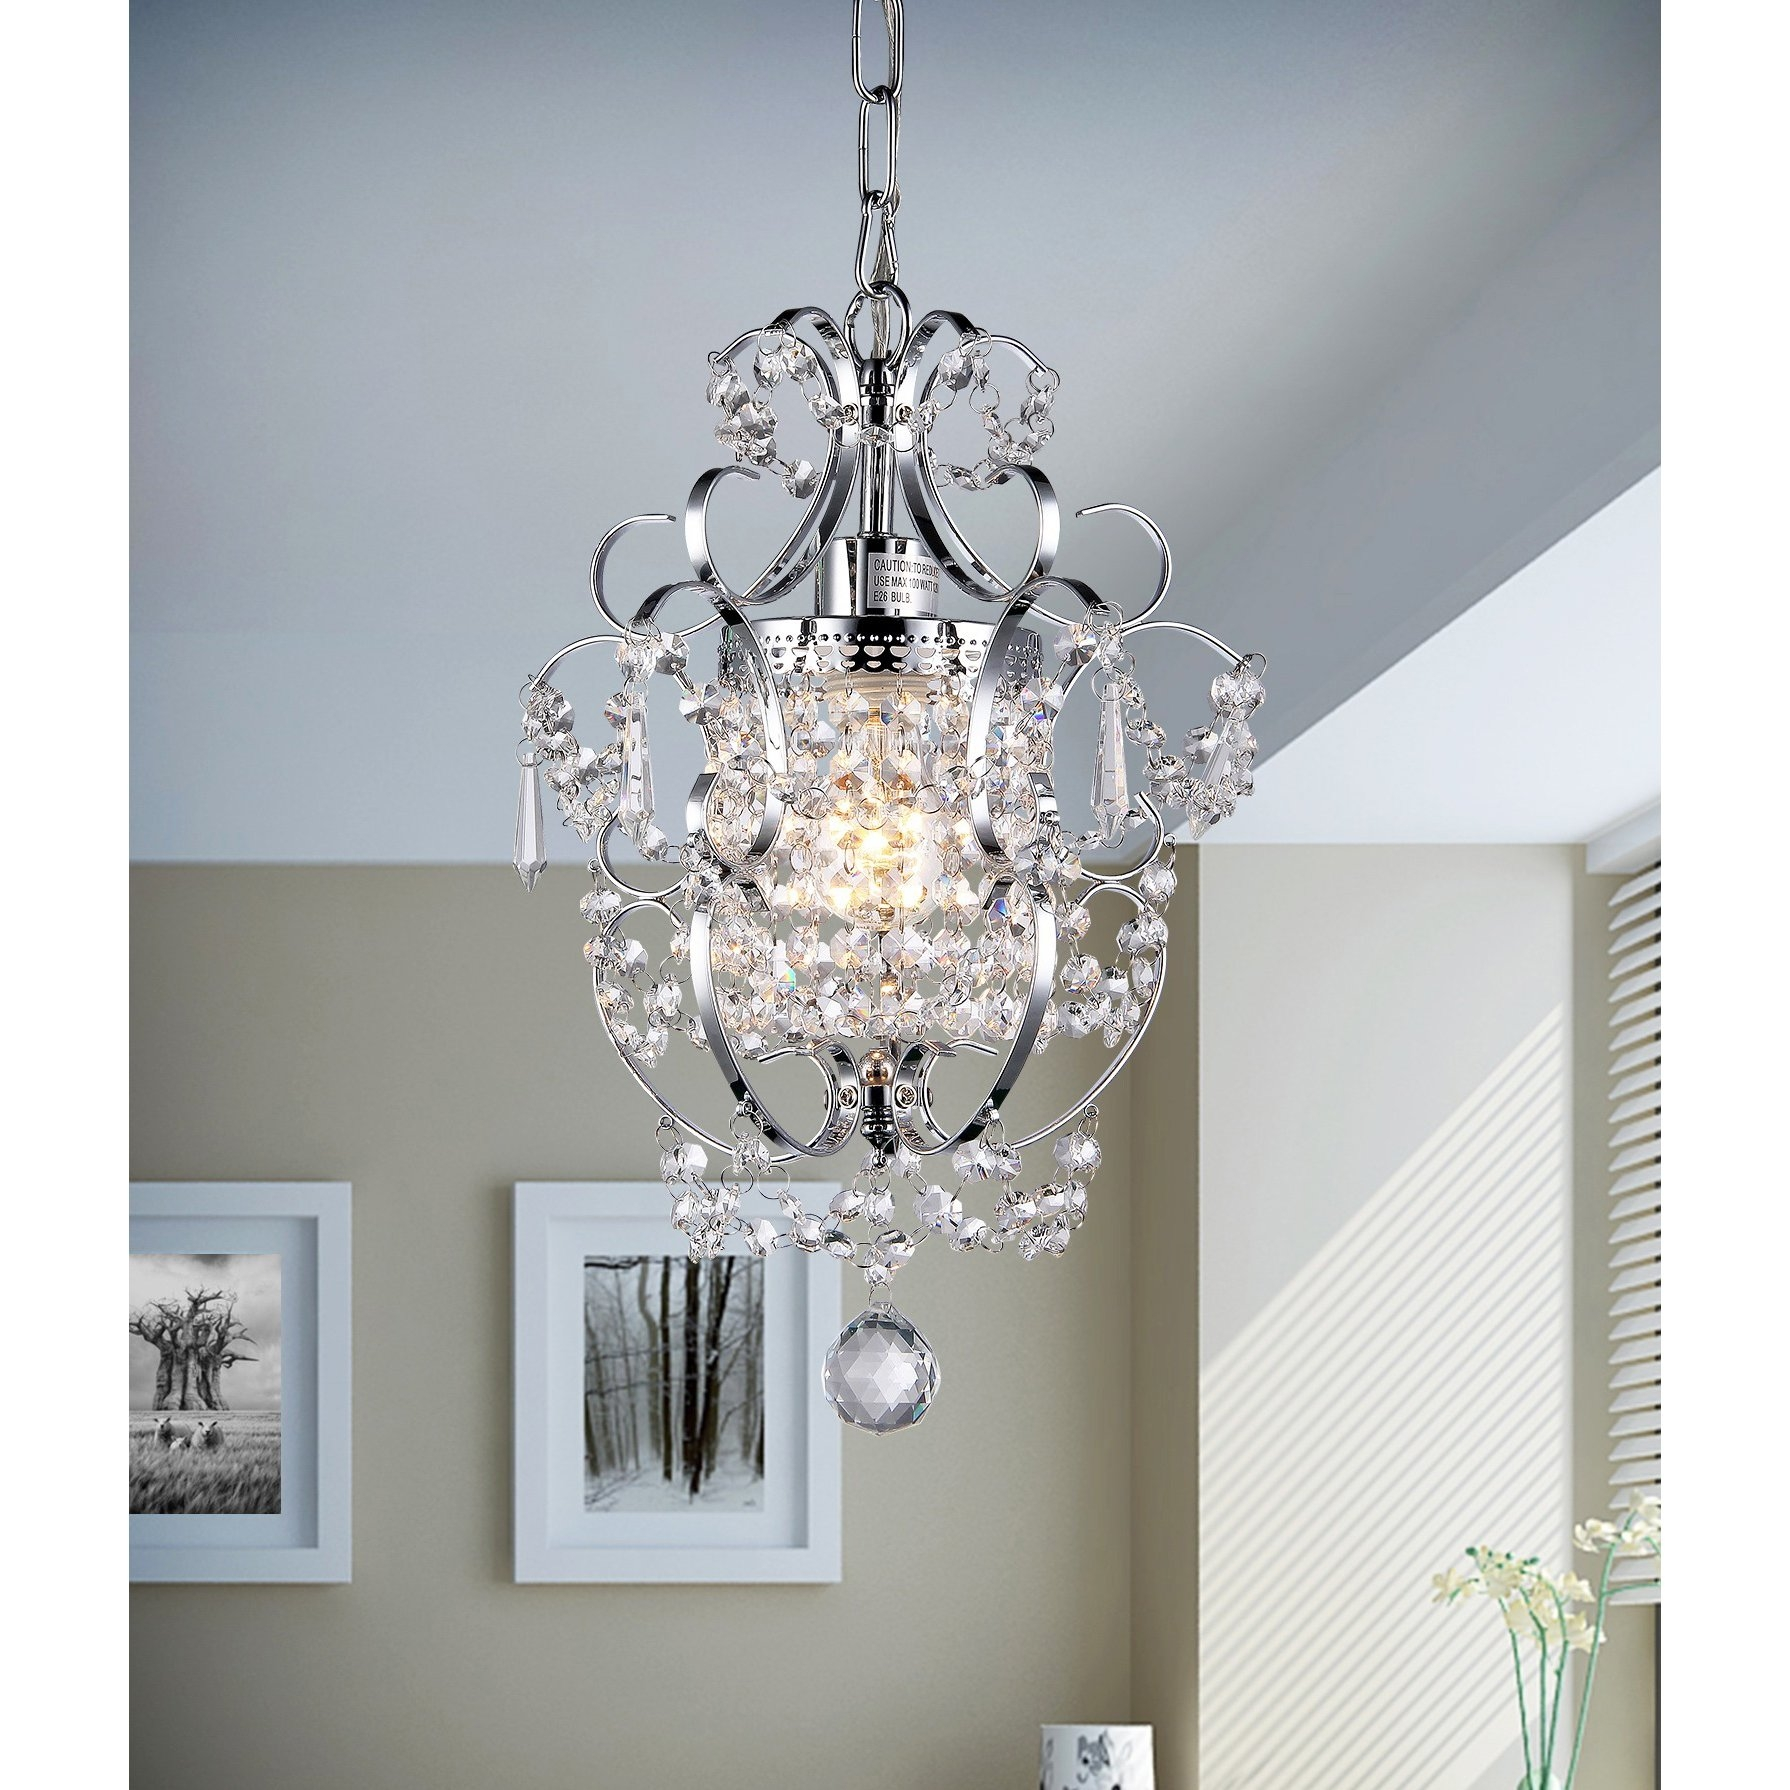 House Of Hampton Renee 1 Light Crystal Chandelier Reviews Wayfair Intended For 3 Tier Crystal Chandelier (View 11 of 15)